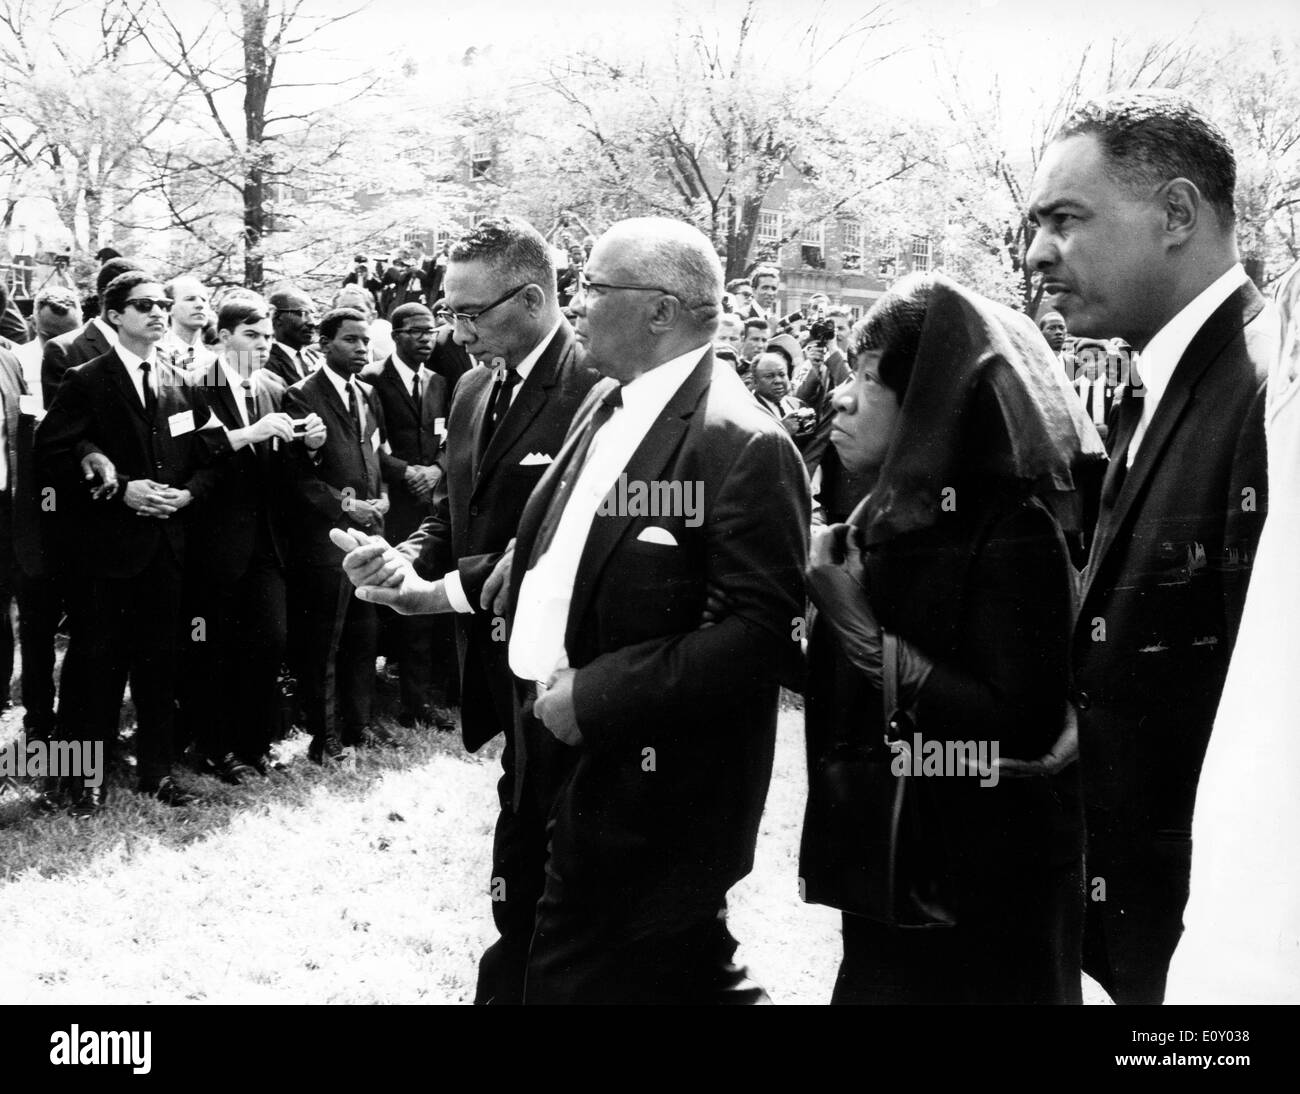 Mourners attend Martin Luther King Jr. funeral Stock Photo